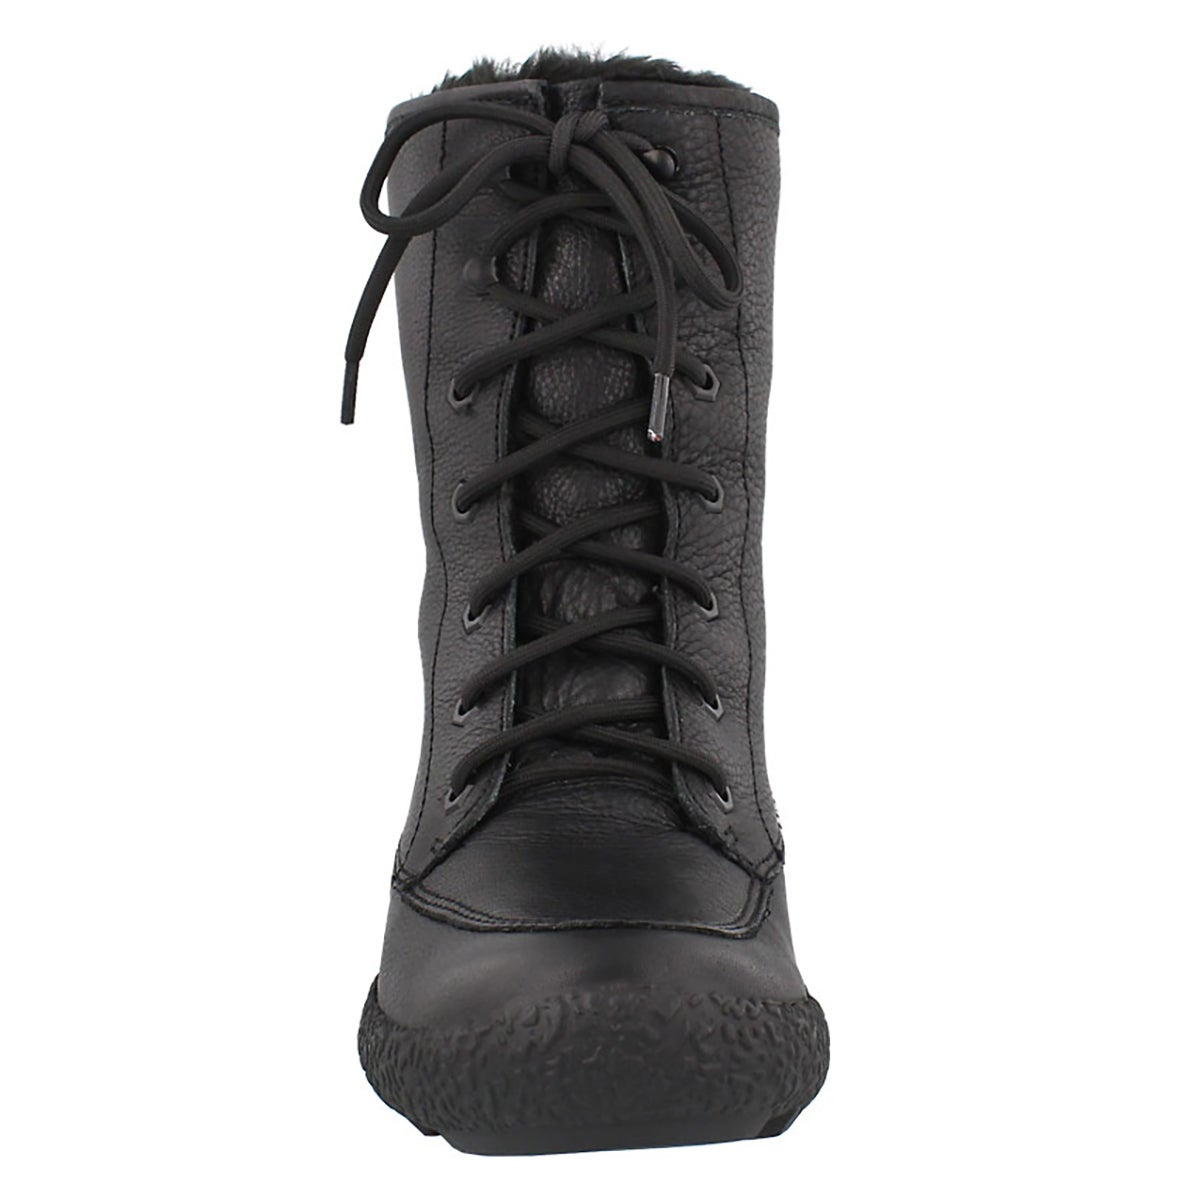 Lds Cheyenne blk/blk wtrpf winter boot